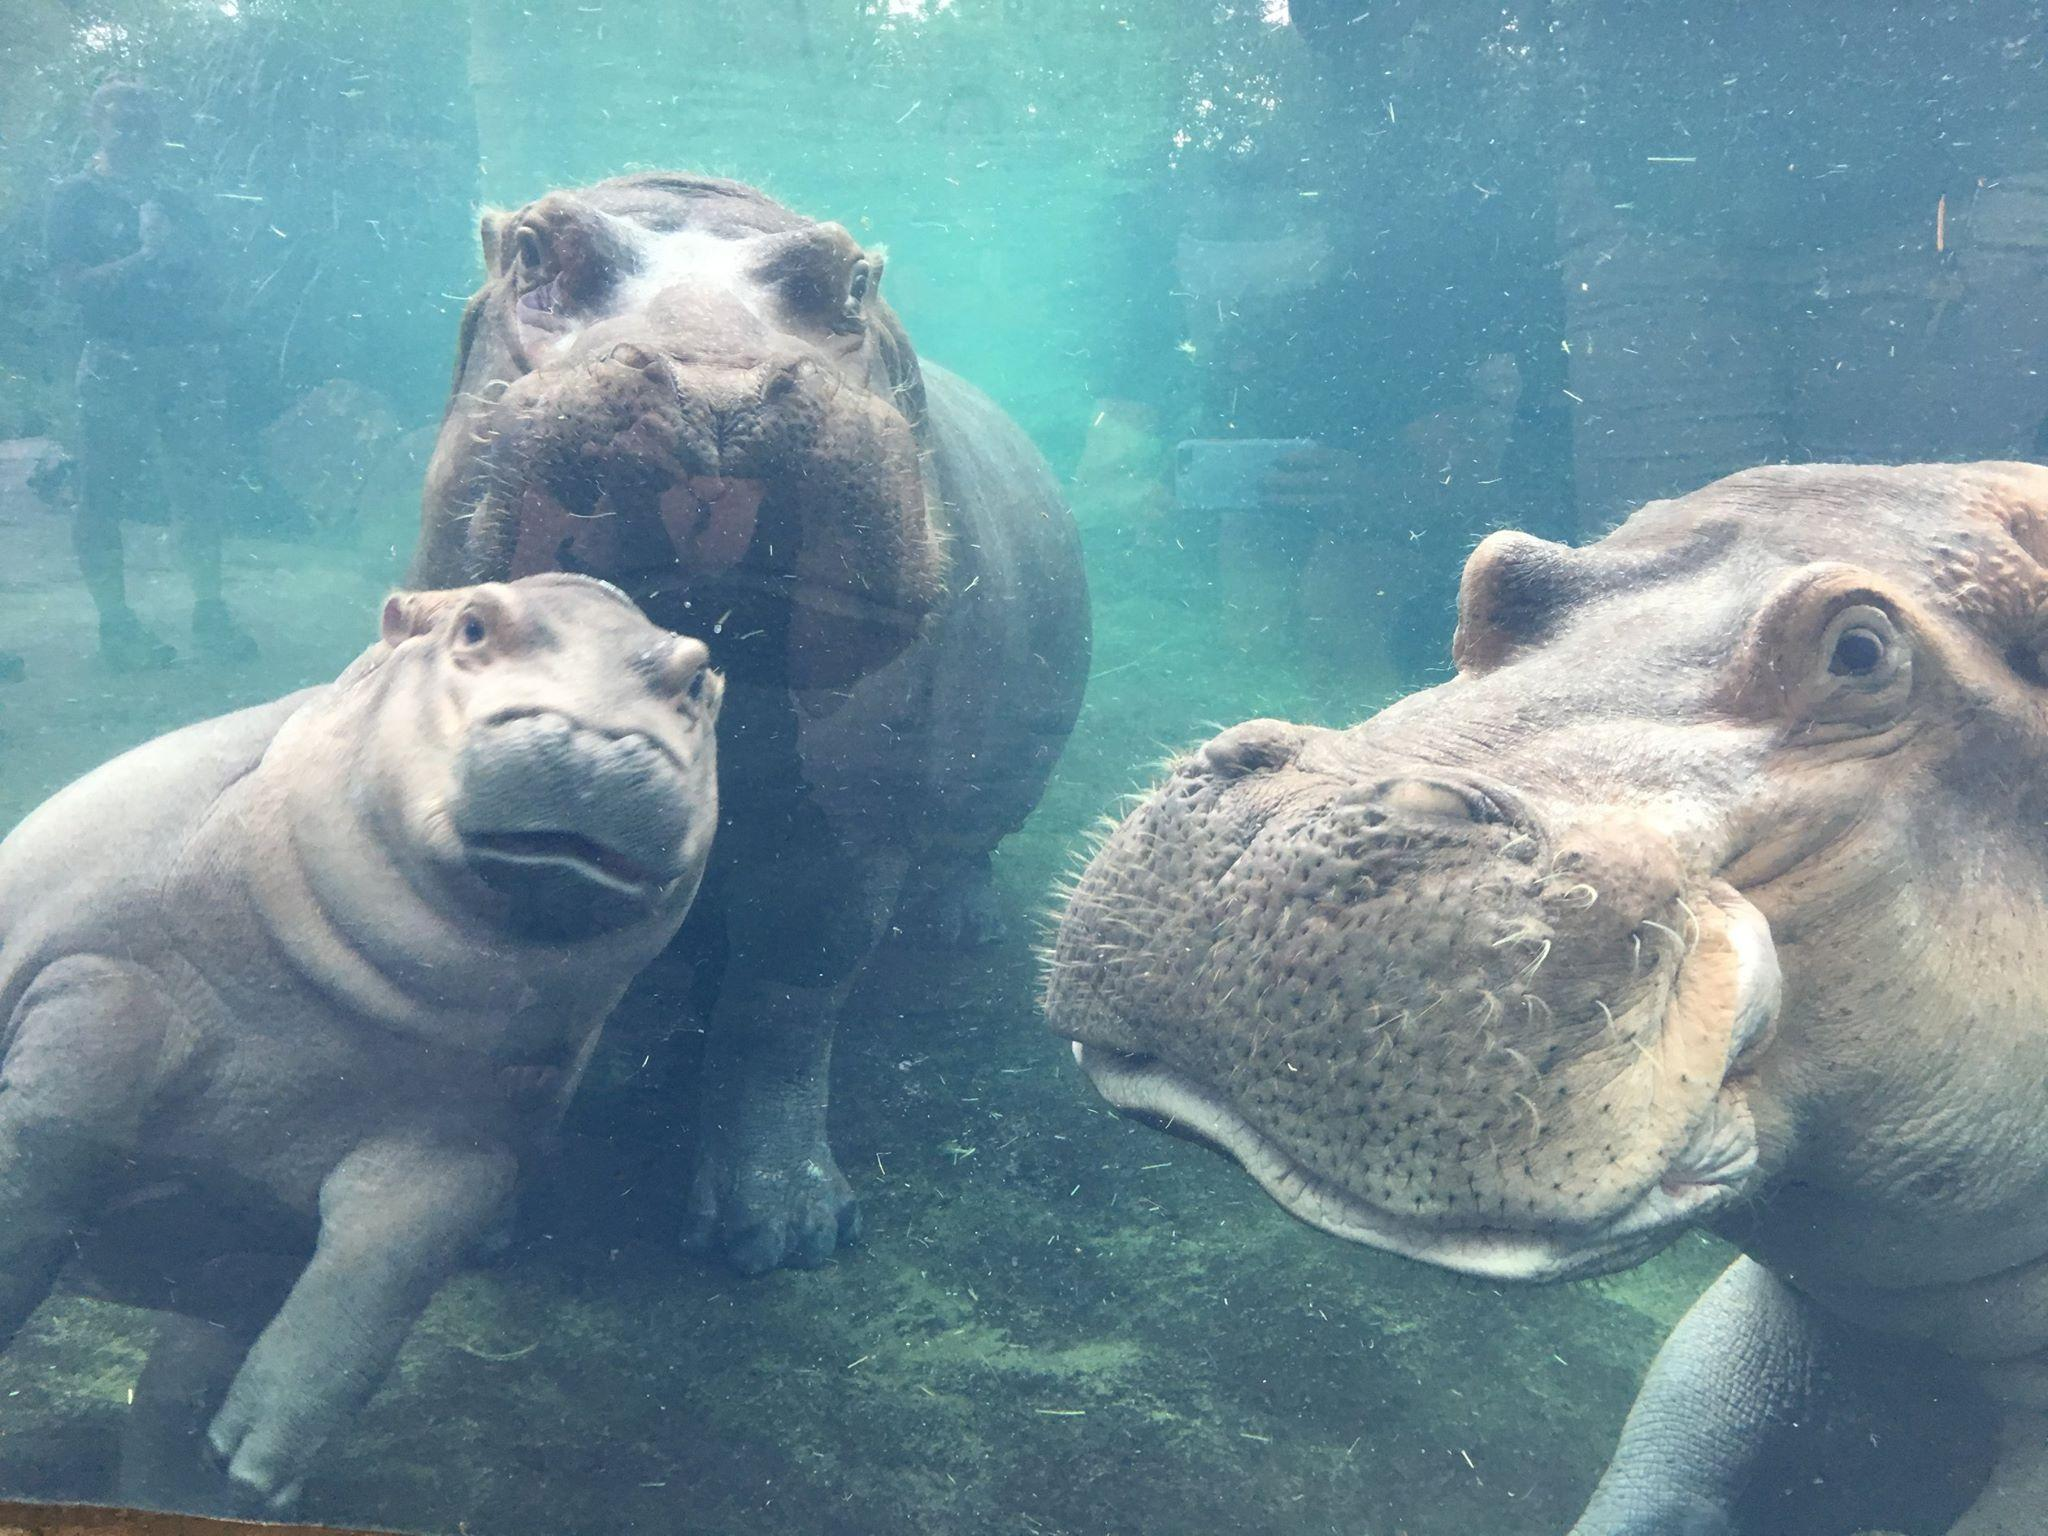 Premature baby hippo, Fiona, pictured with parents for first time